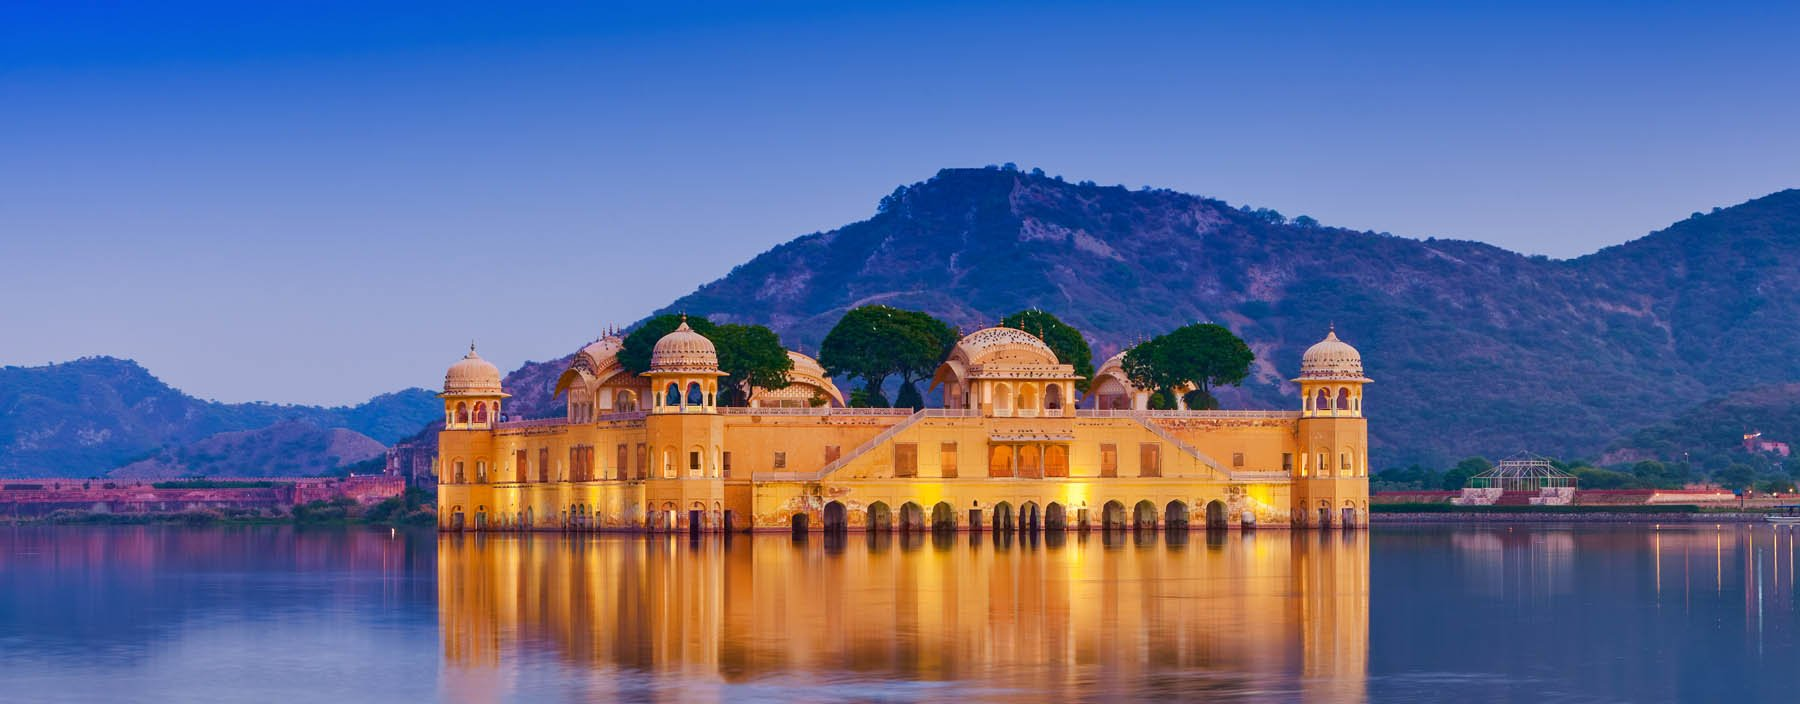 in, jaipur, the palace jal mahal.jpg